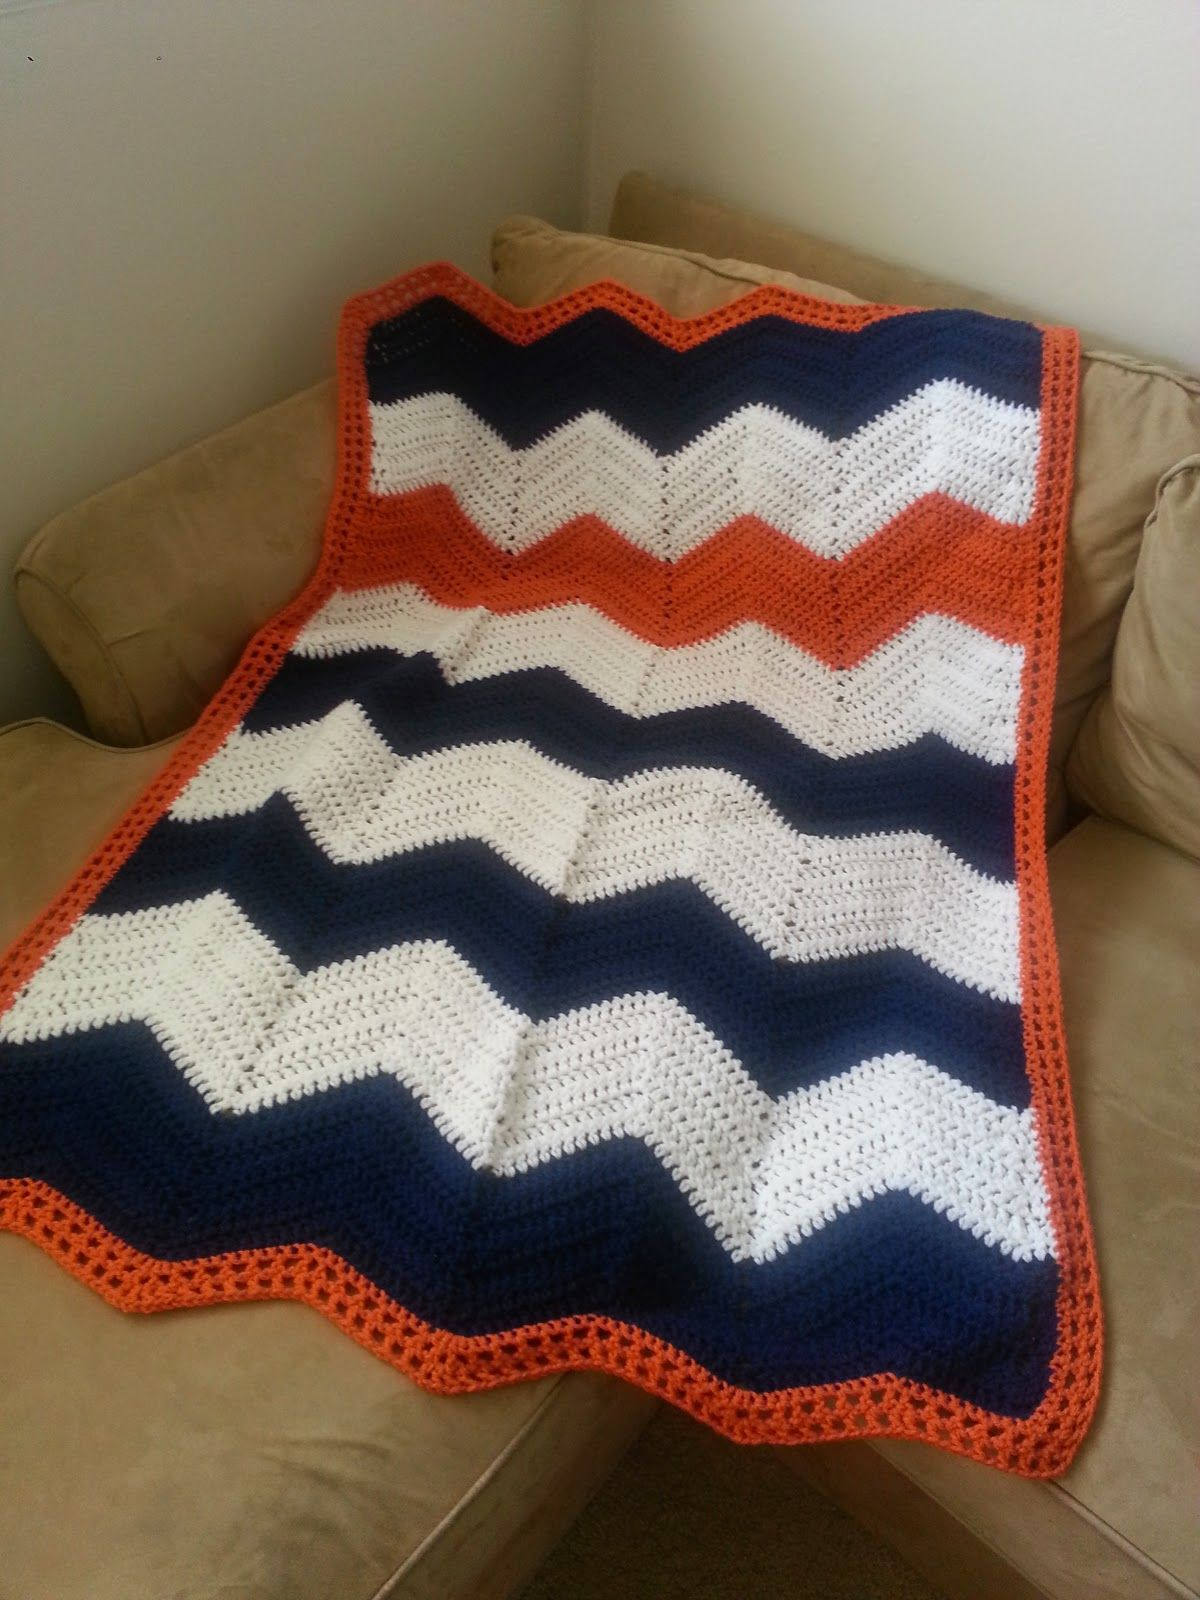 Creative highs crochet chevron blanket free pattern crochet creative highs crochet chevron blanket free pattern bankloansurffo Image collections